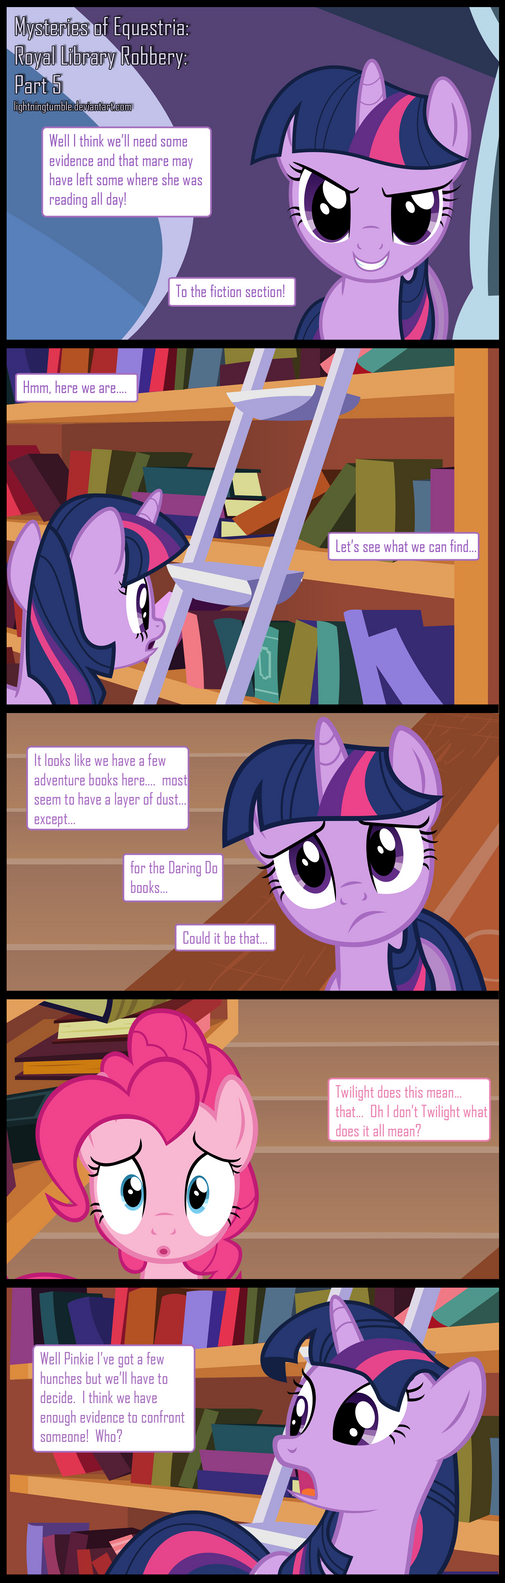 Mysteries of Equestria: Library Robbery: Part 5 by lightningtumble